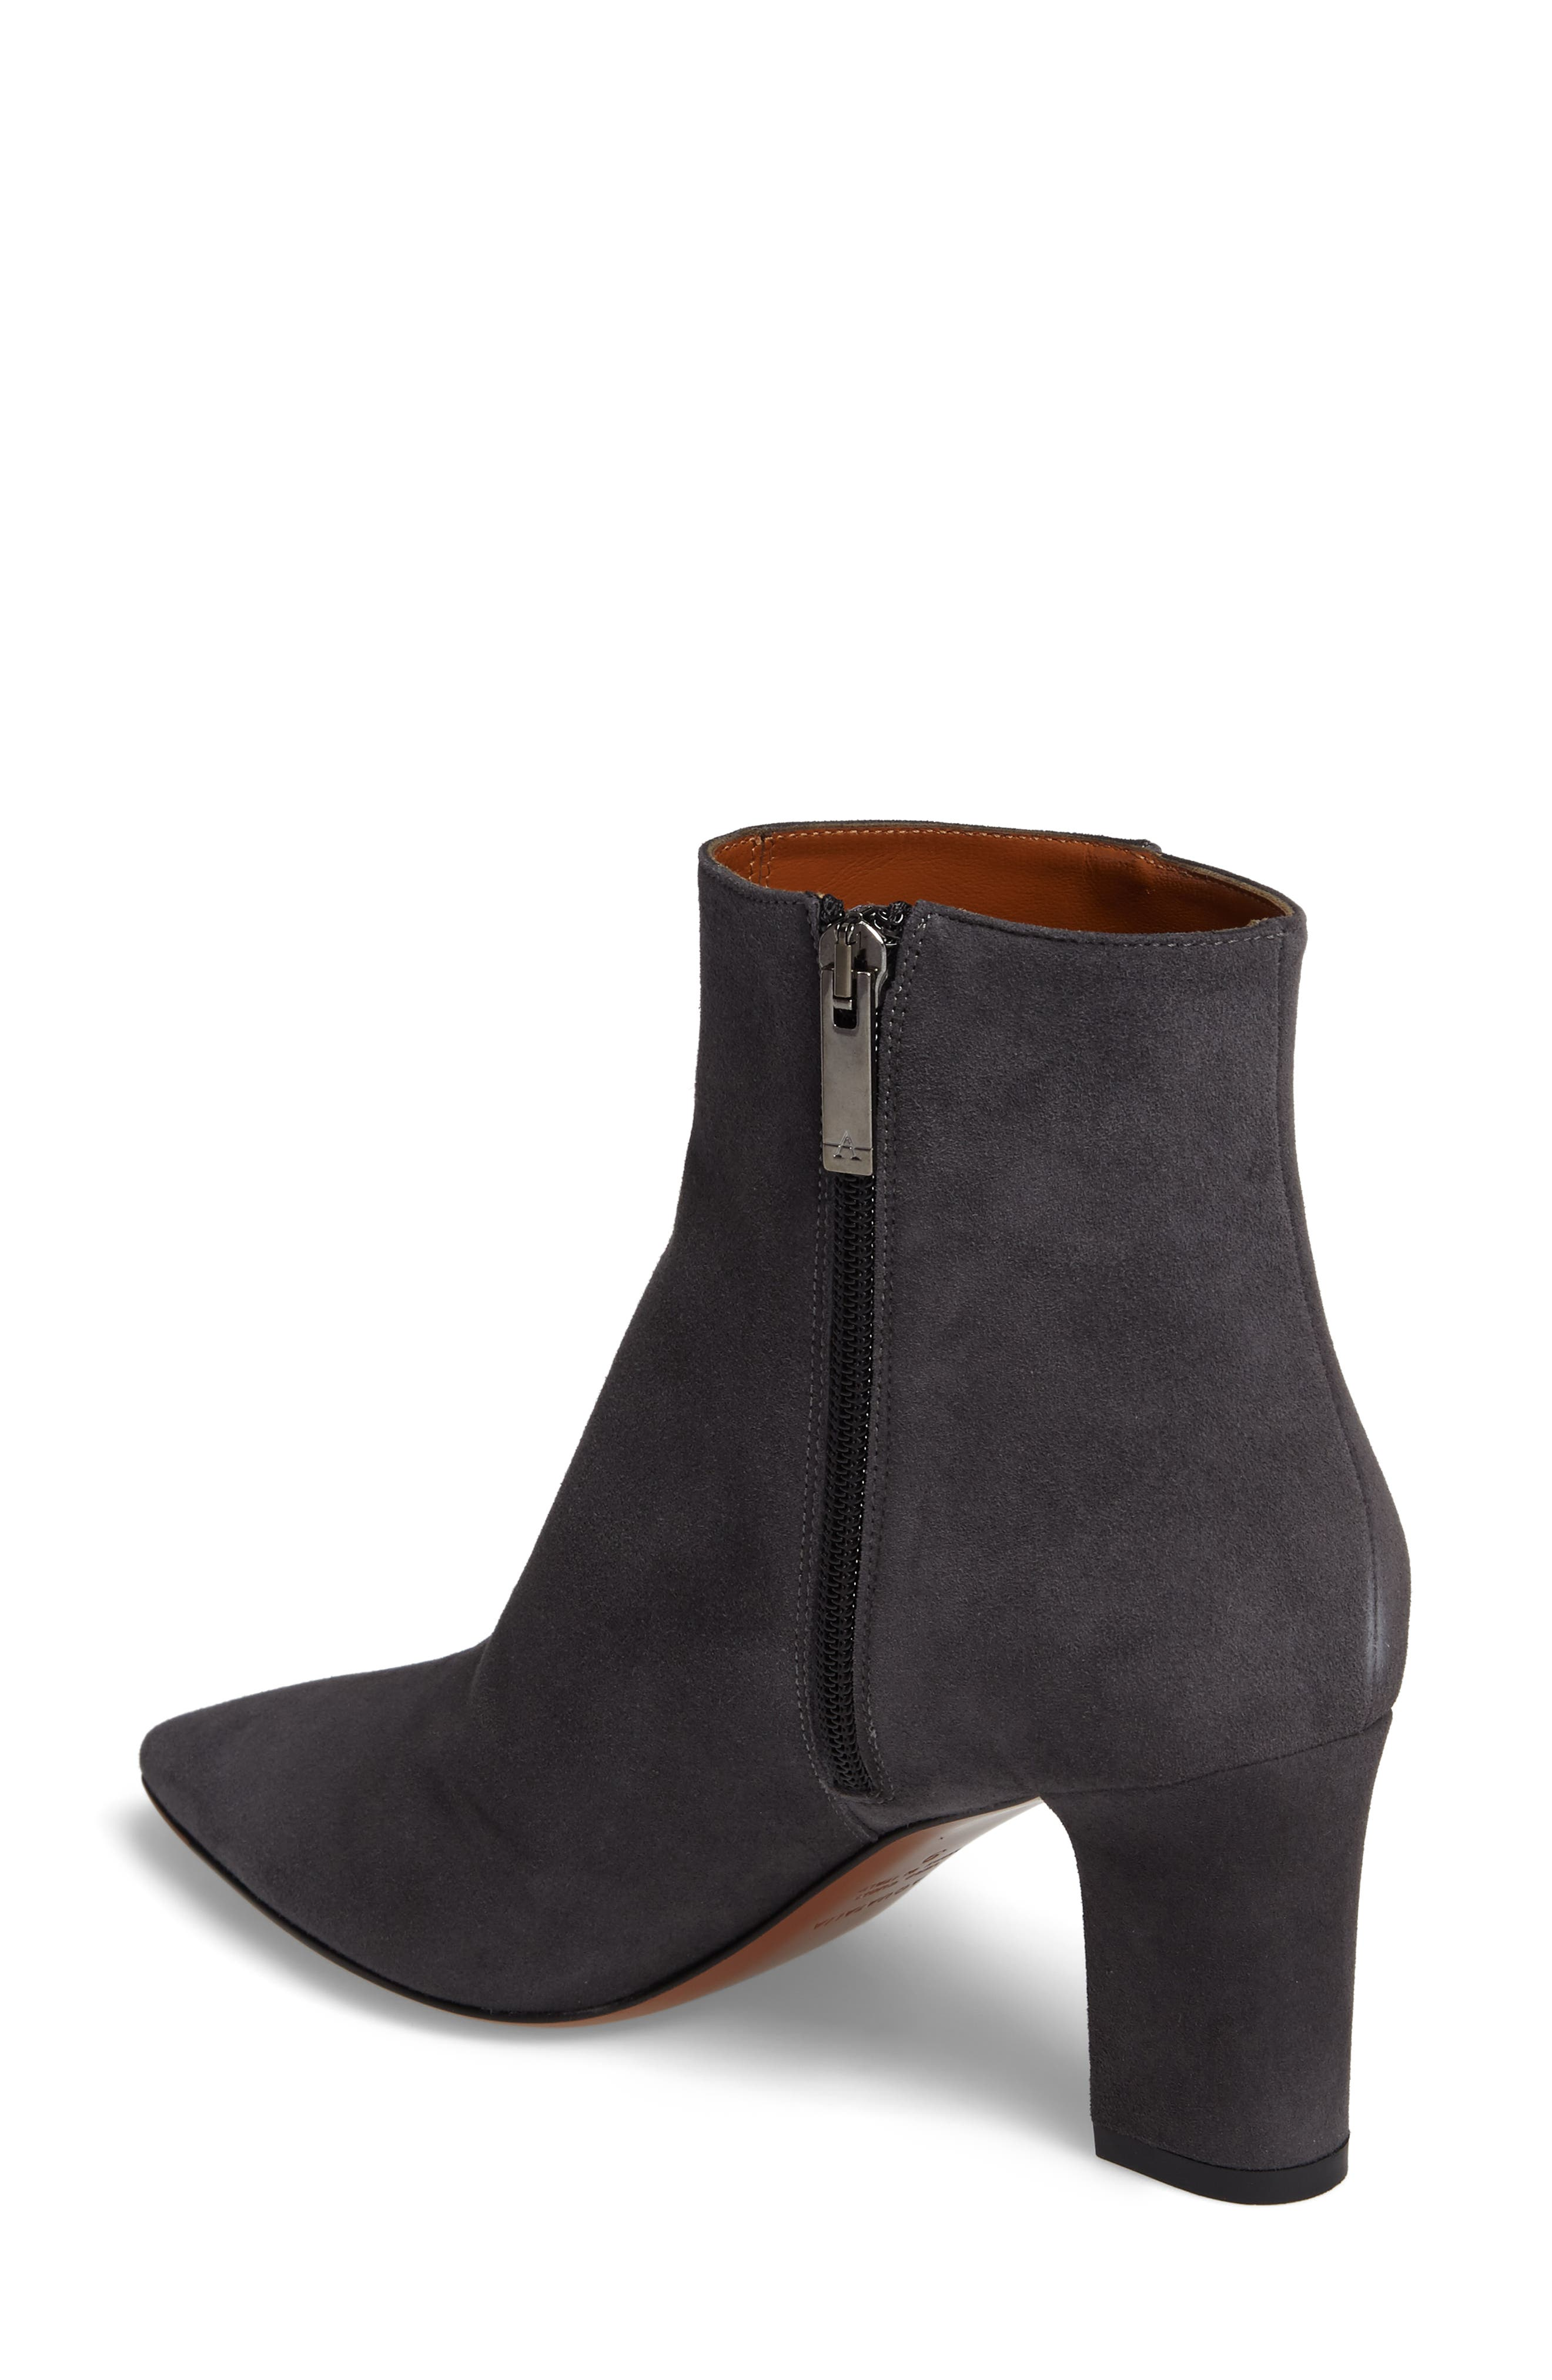 Maia Weatherproof Pointed Toe Bootie,                             Alternate thumbnail 2, color,                             Anthracite Suede